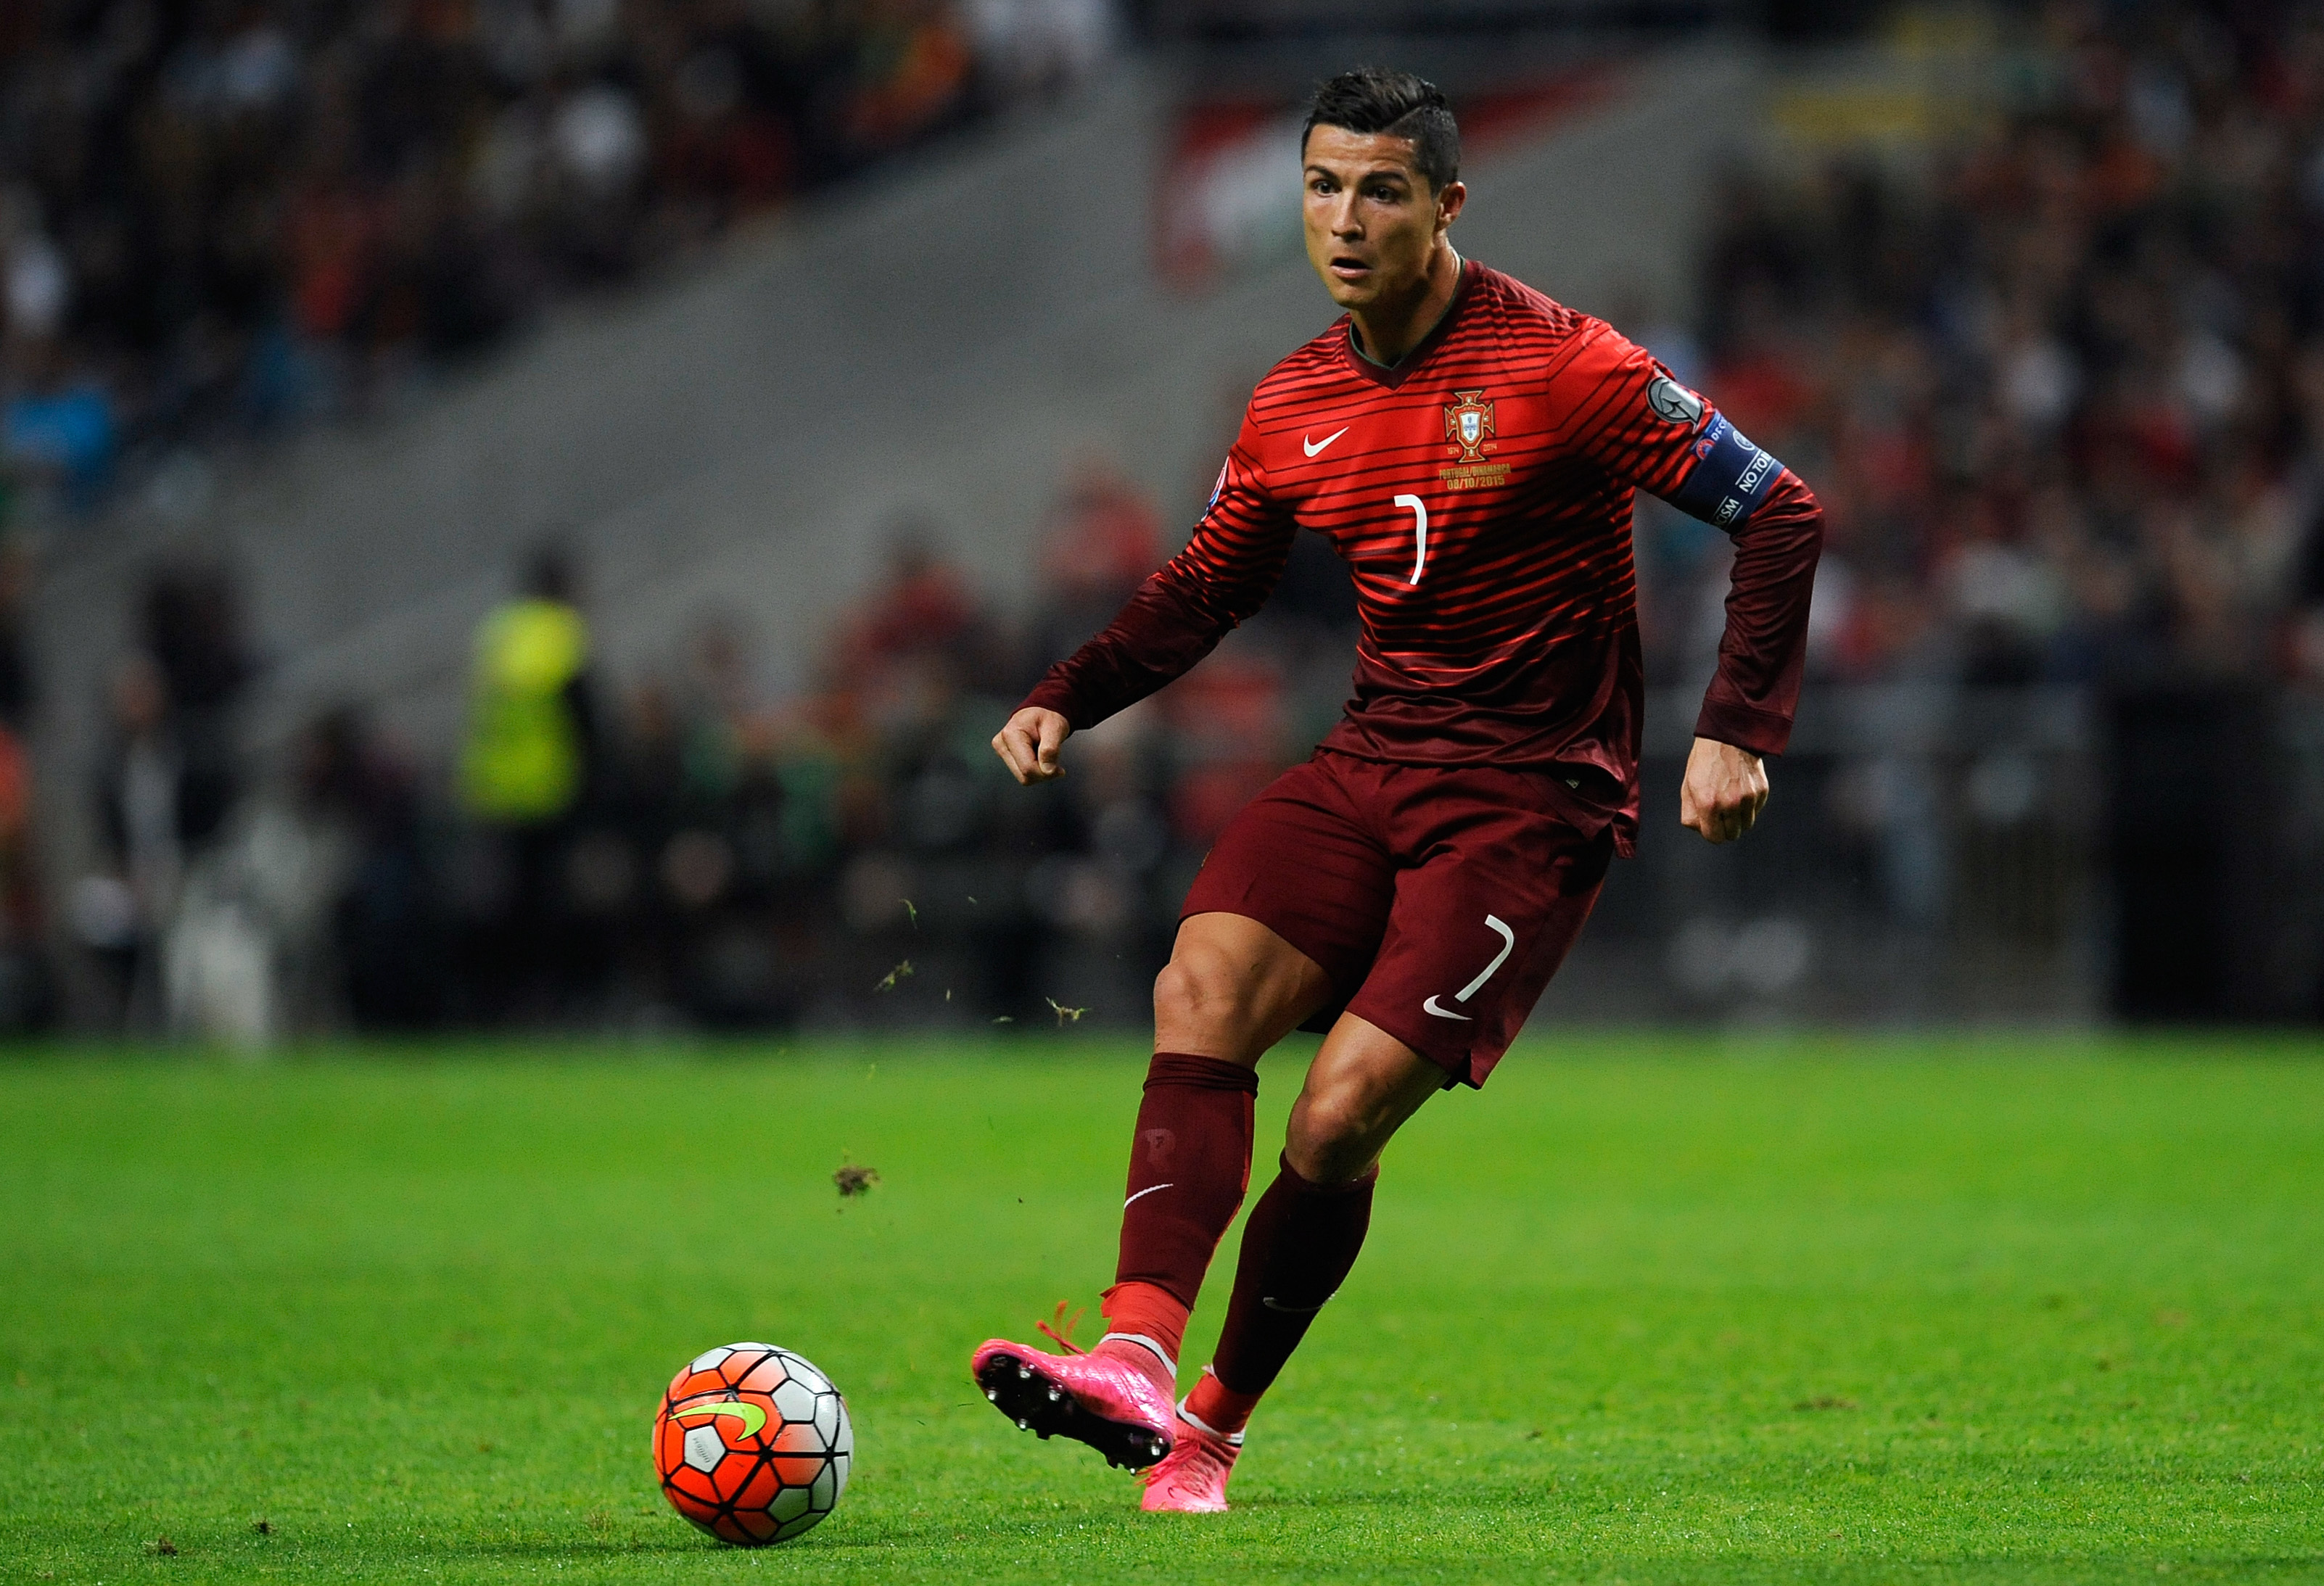 Cristiano ronaldo hd wallpaper background image 3204x2187 id 716405 wallpaper abyss - Hd photos of cr7 ...